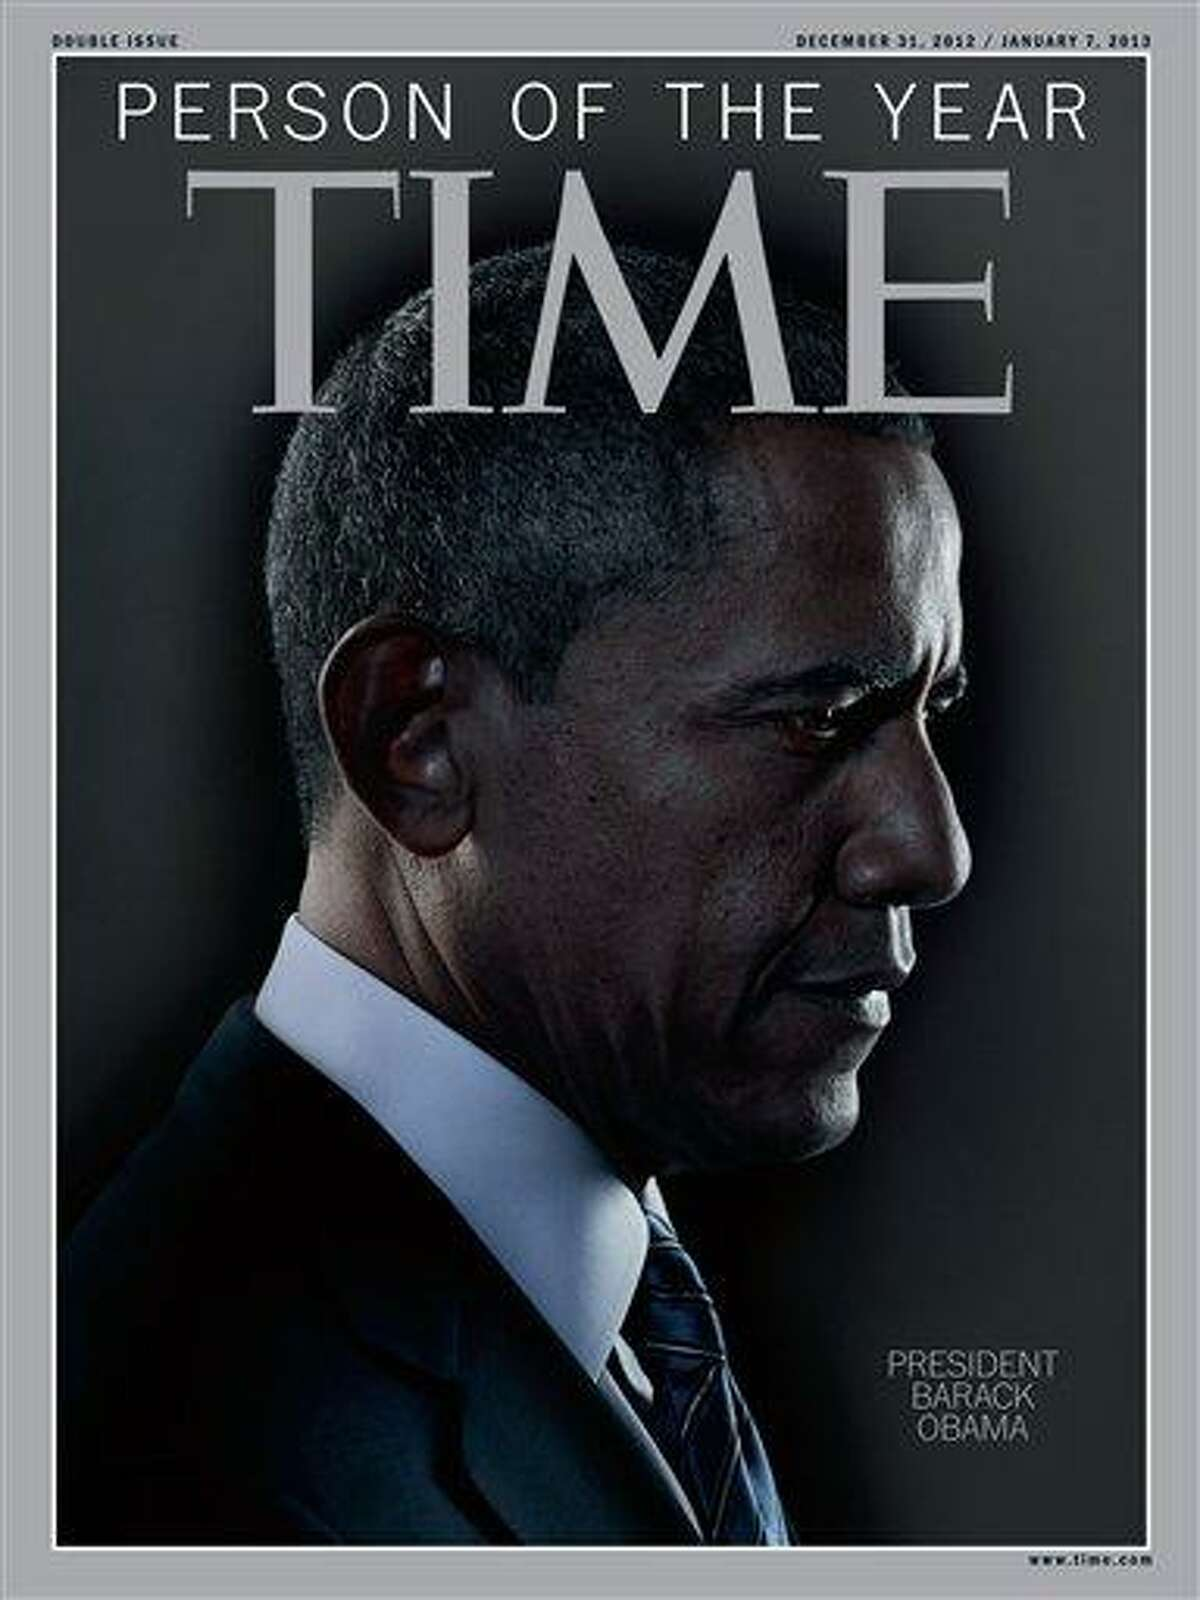 """President Barack Obama is Time Magazine's Person of the Year. The selection was announced Wednesday on NBC's """"Today"""" show. The short list for the honor included Malala Yousafzai, the Pakistani teenager who was shot in the head for advocating for girls' education. It also included Egyptian president Mohamed Morsi, Apple CEO Tim Cook and Italian physicist Fabiola Giannati. Obama also received the honor in 2008, when he was President-elect. Last year, """"The Protester"""" got the honor. AP Photo/Time Magazine"""